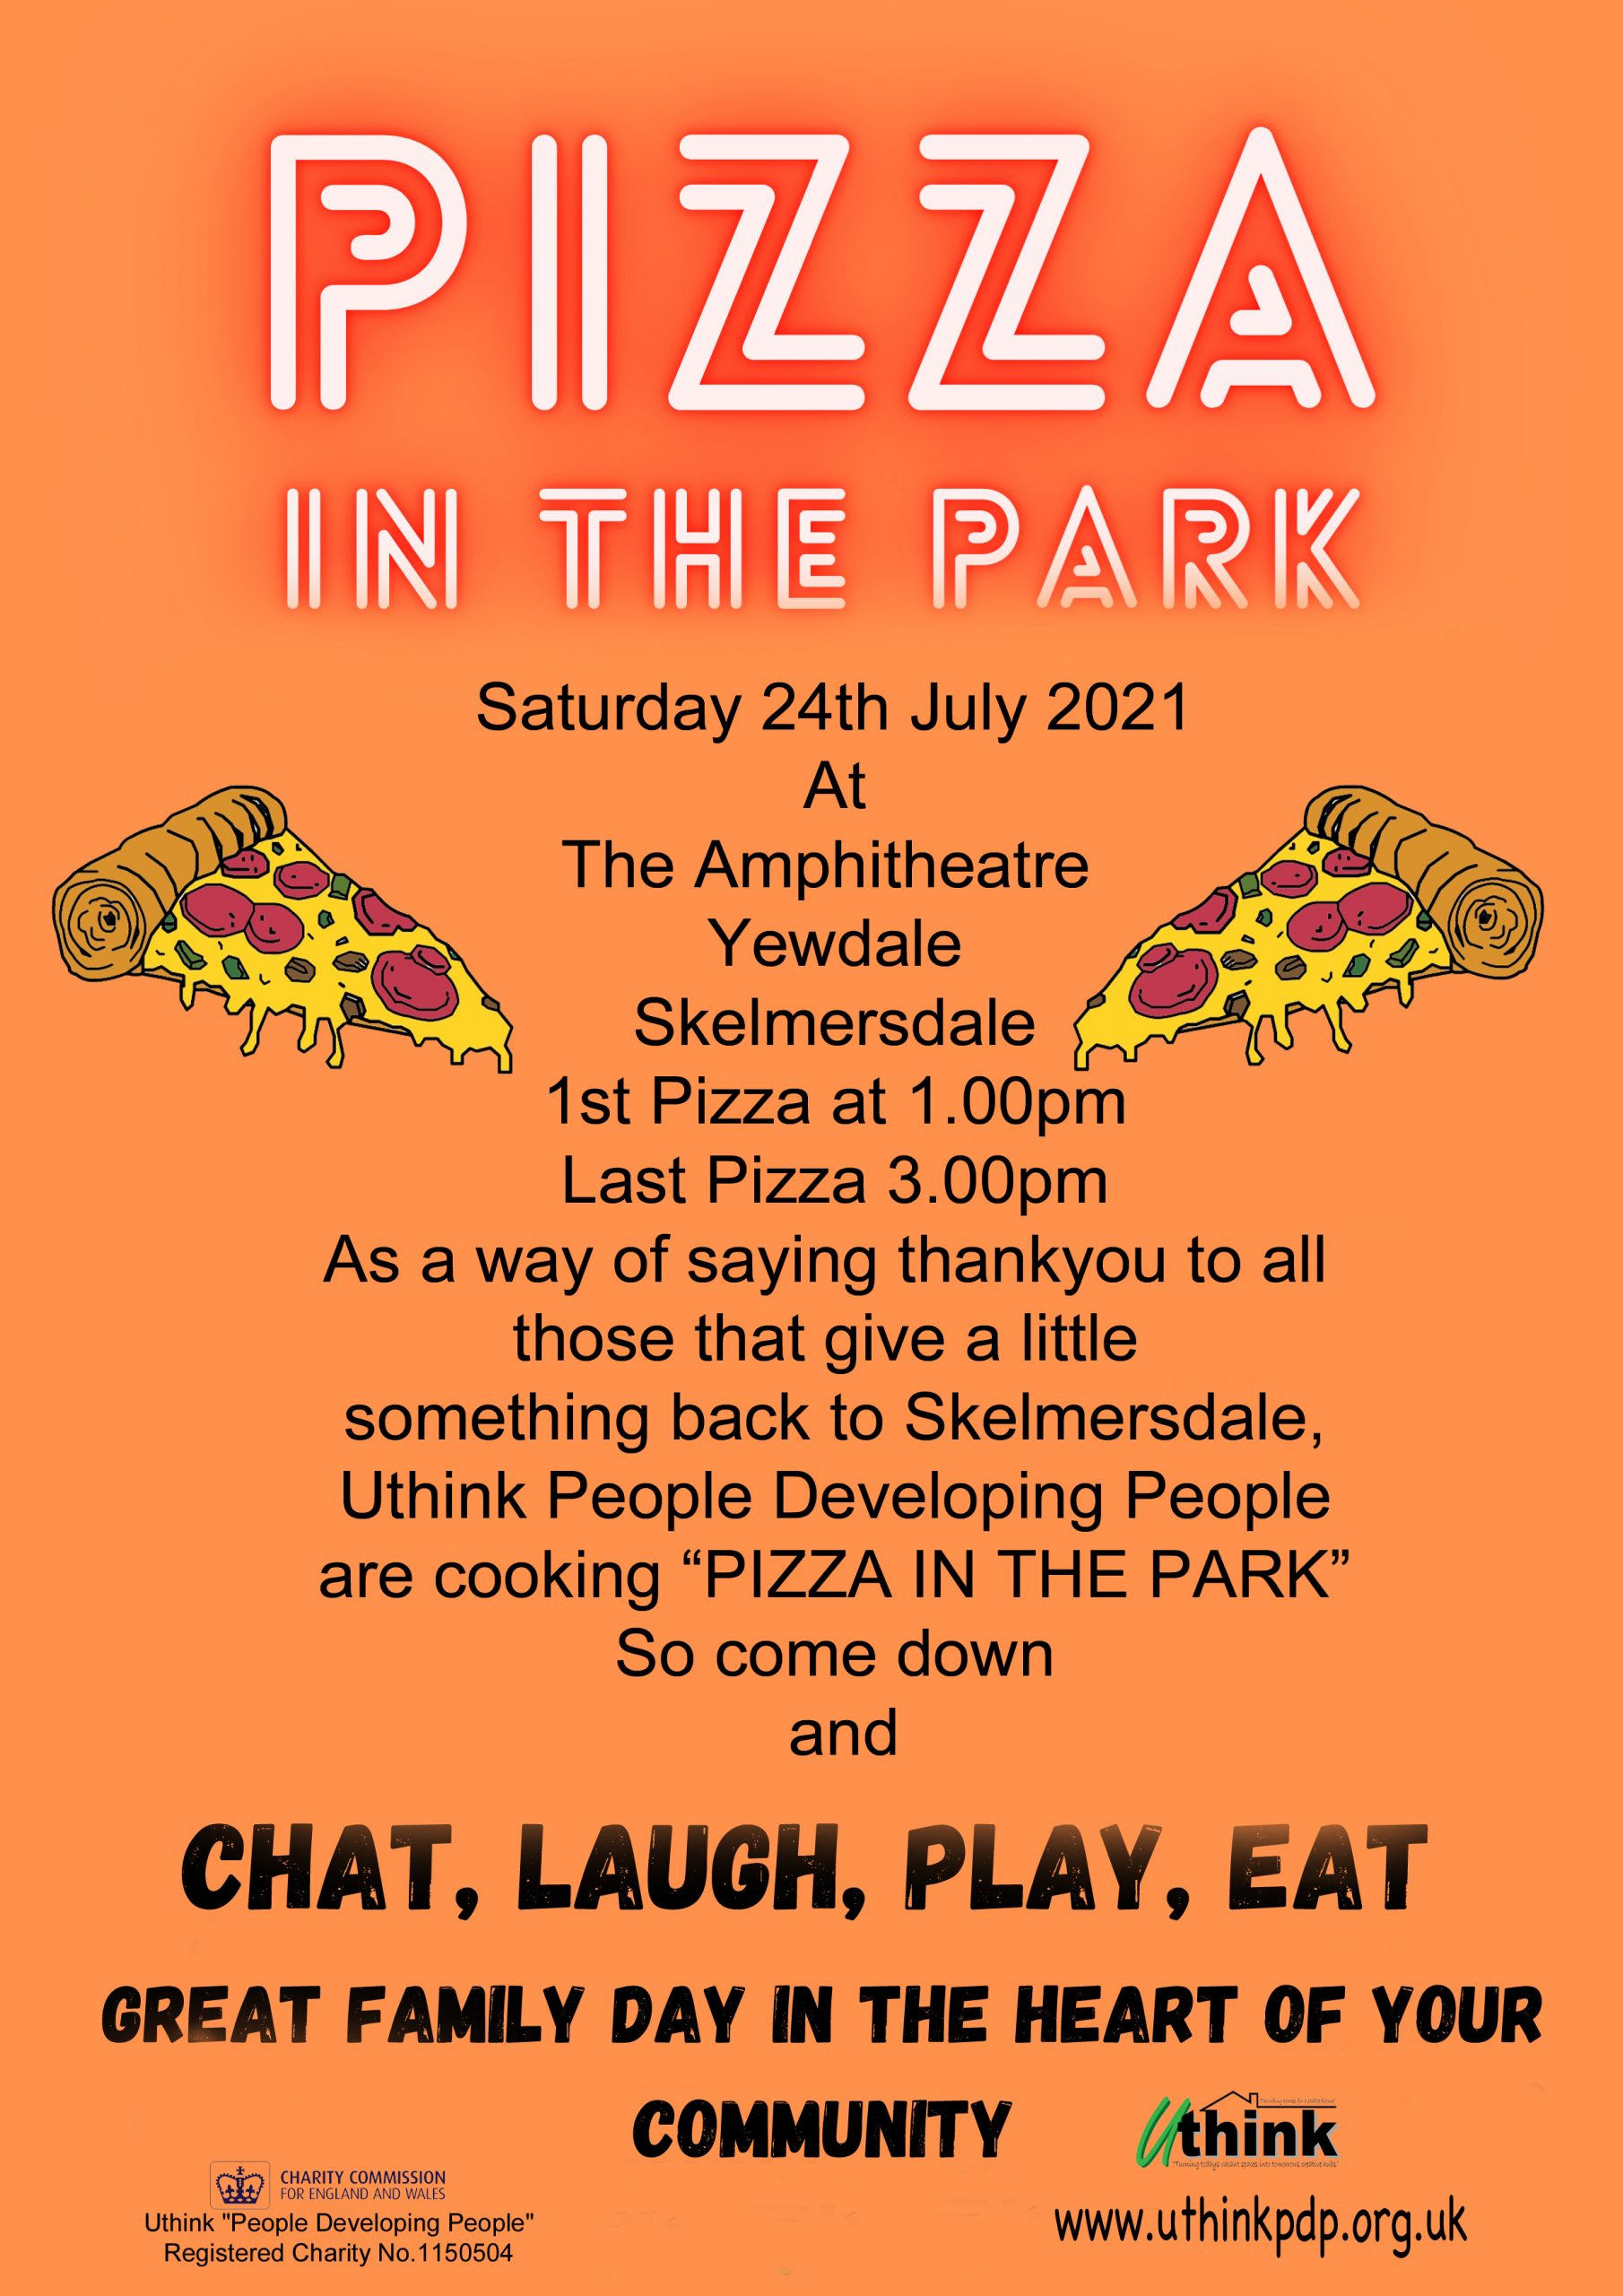 Image Pizza in the Park Skelmersdale